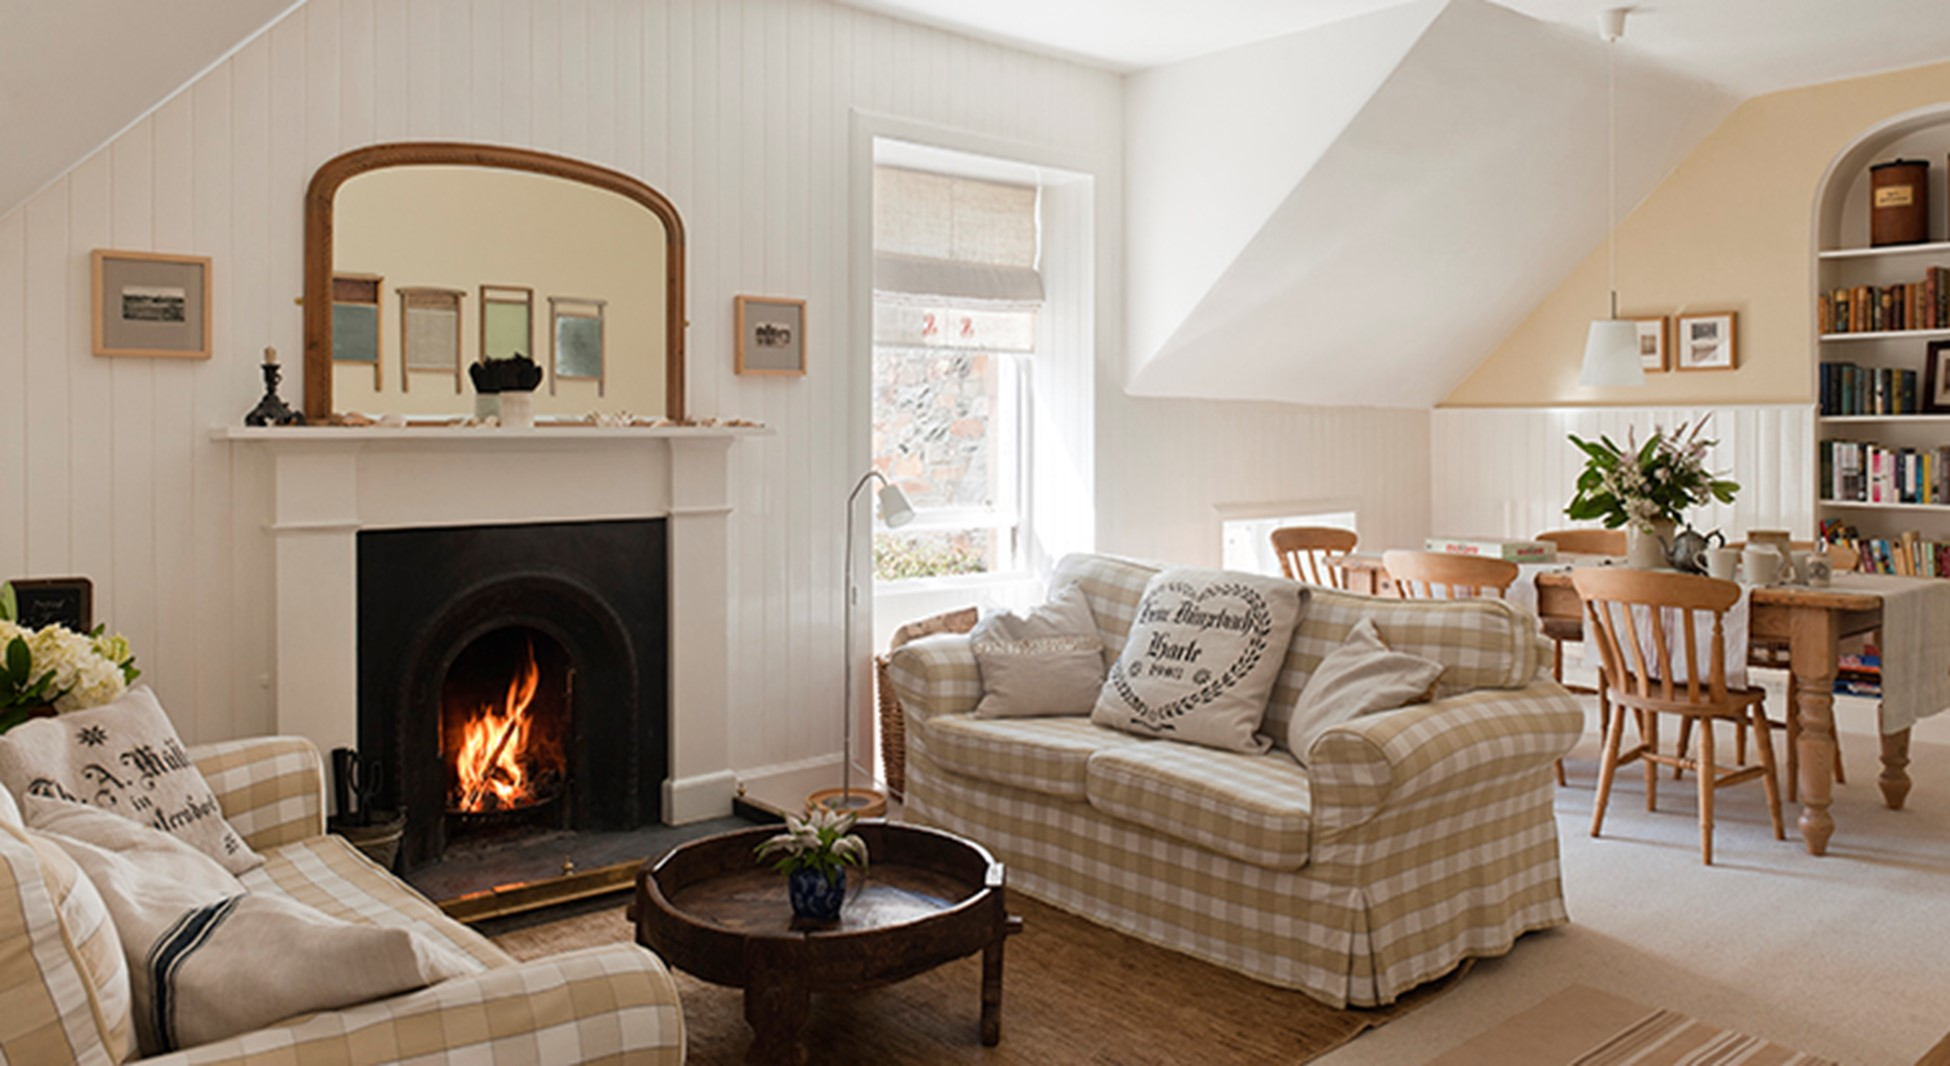 Should You Sell Your Home Now or Wait Until Spring? 1 West Hartford Interior fireplace